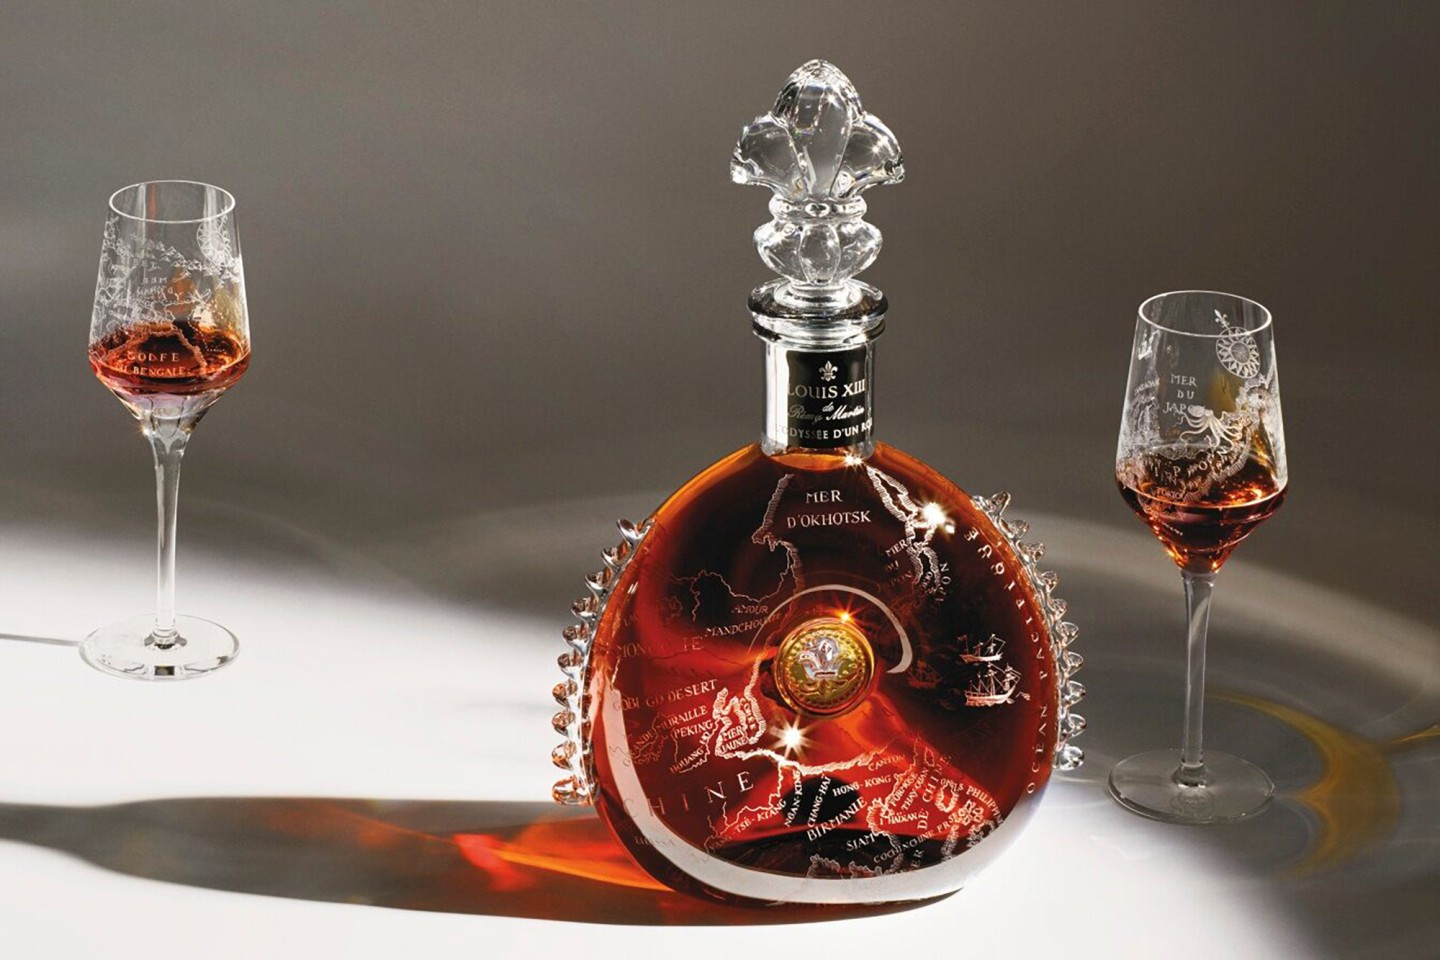 L'Odyssée D'un Roi (Journey of a King) by Louis XIII Cognac sold three versions of this decanter in 2016 via Sotheby's